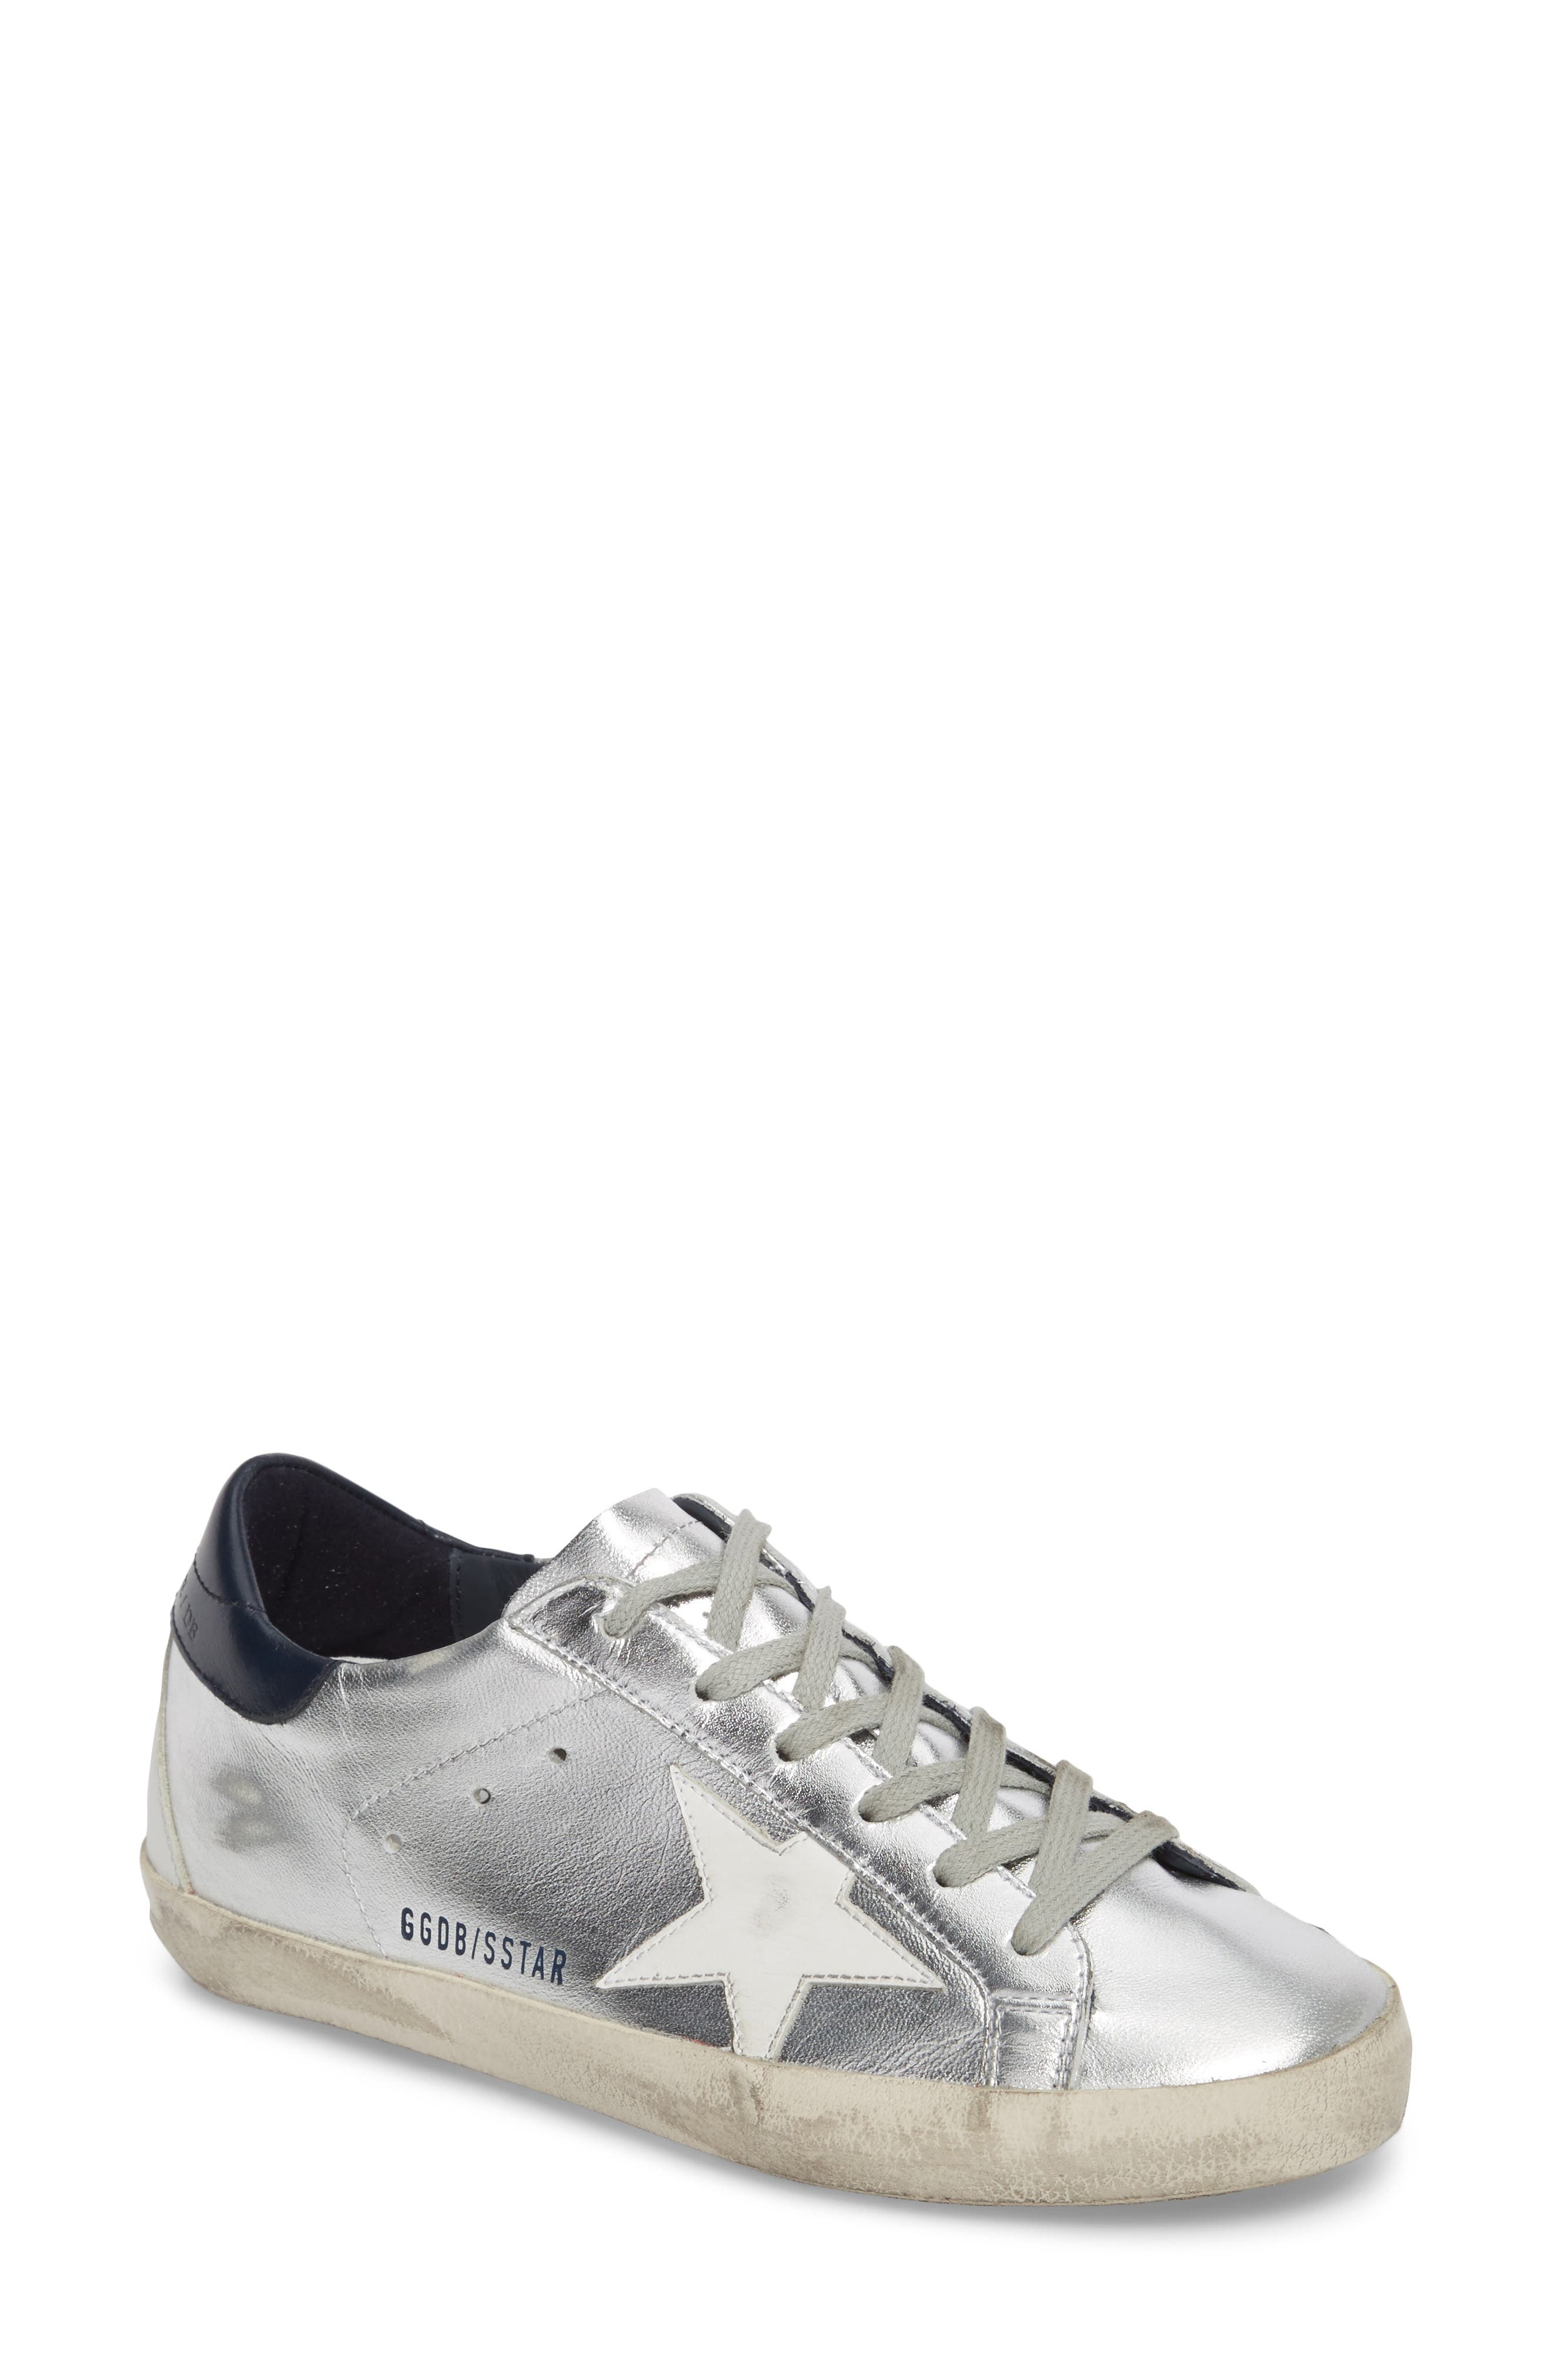 Superstar Metallic Low Top Sneaker,                             Main thumbnail 1, color,                             040